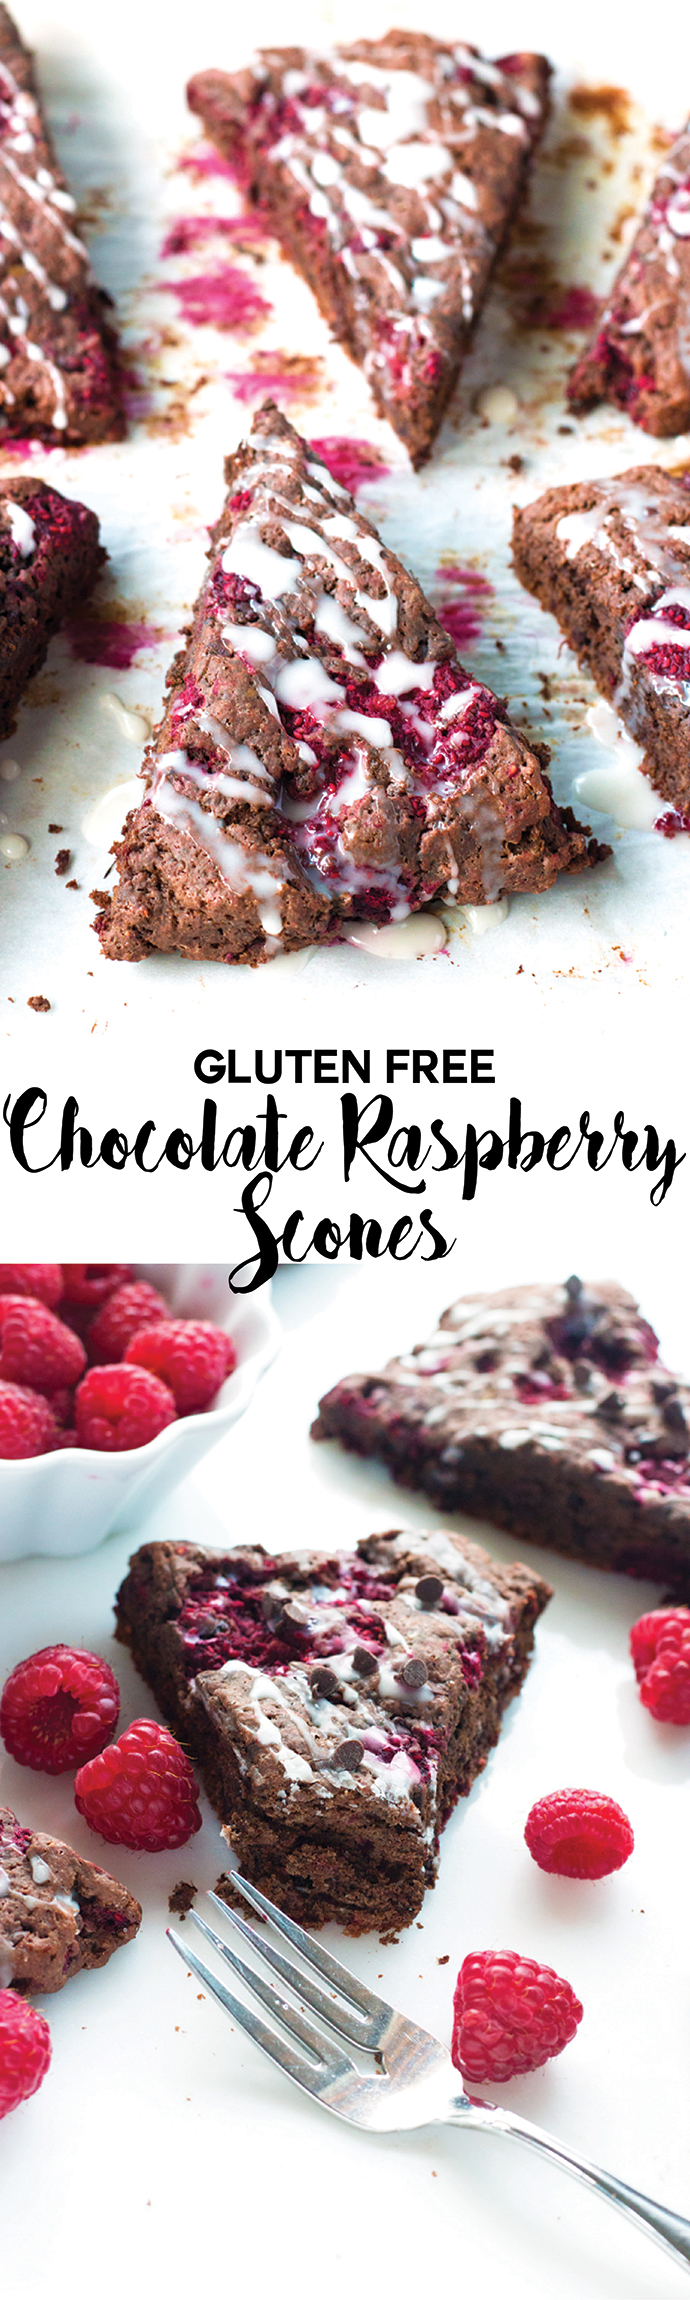 Gluten-Free Chocolate Raspberry Scones - Grain Changer